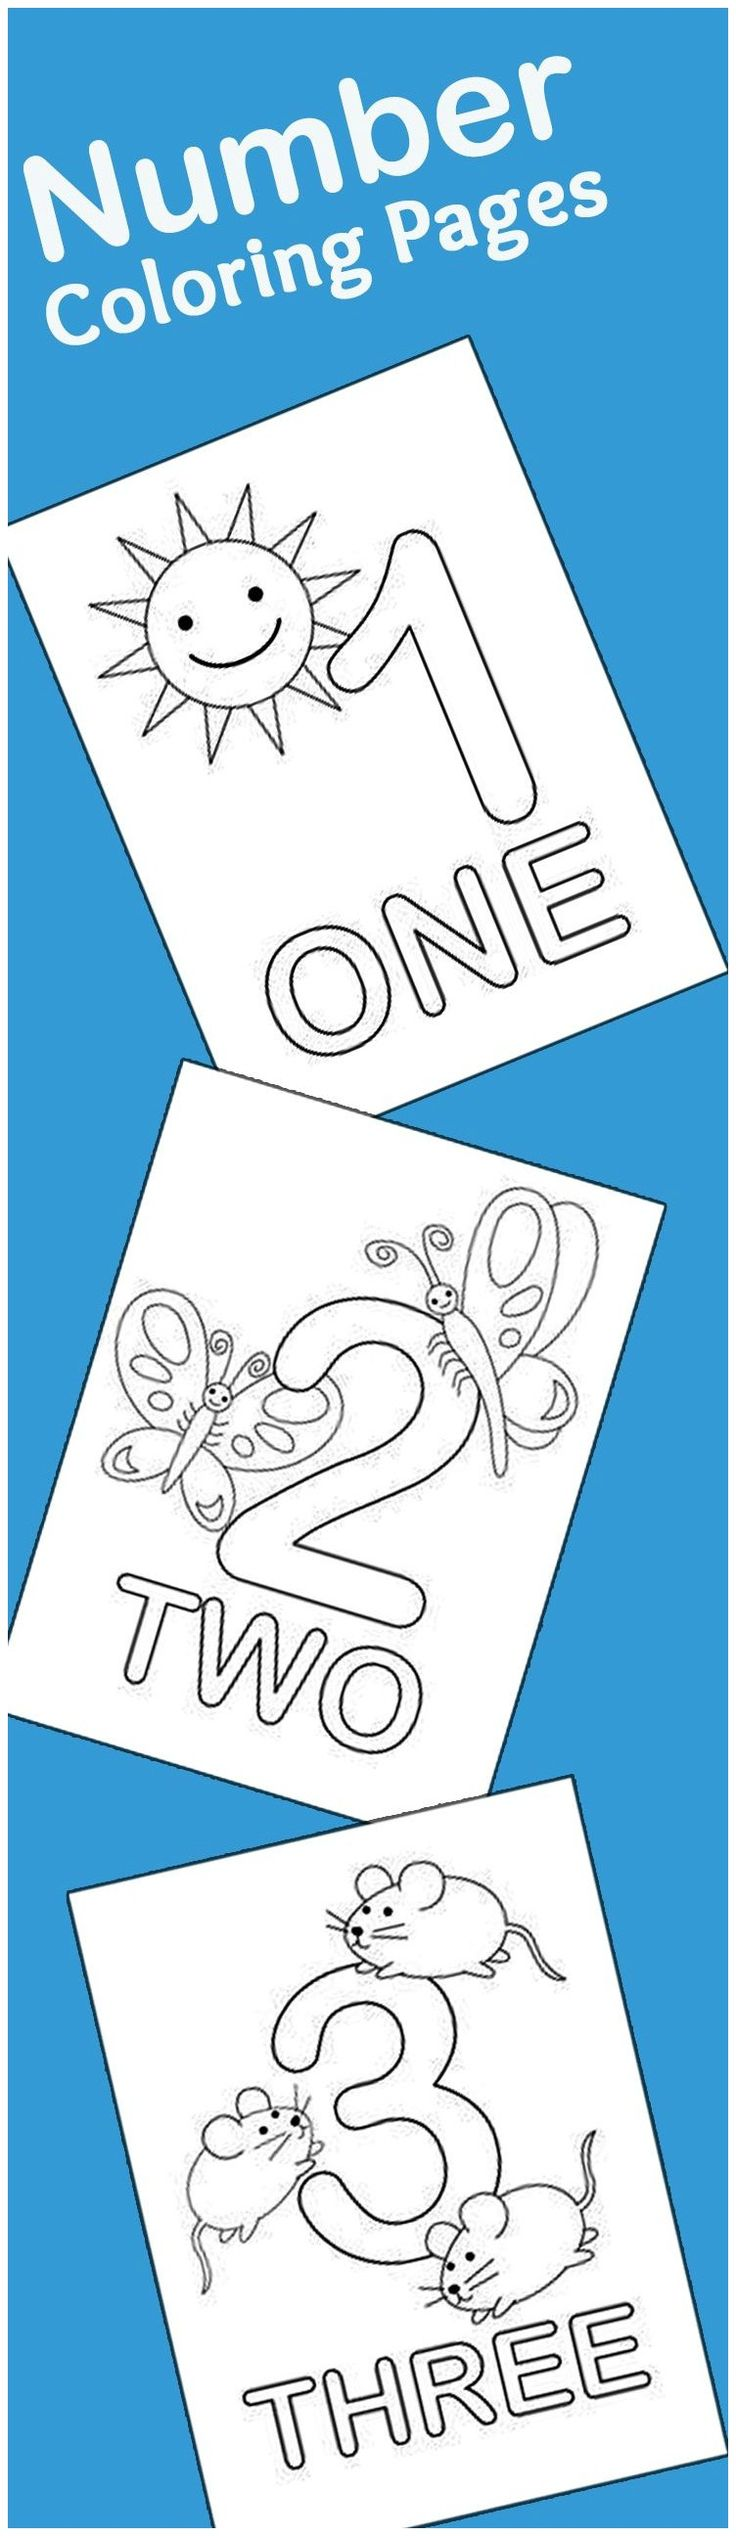 21 Easy To Learn Number Coloring Pages For Kids: This is a list of the top 21 number coloring sheets that you can use to introduce numbering as well as coloring to your kid.